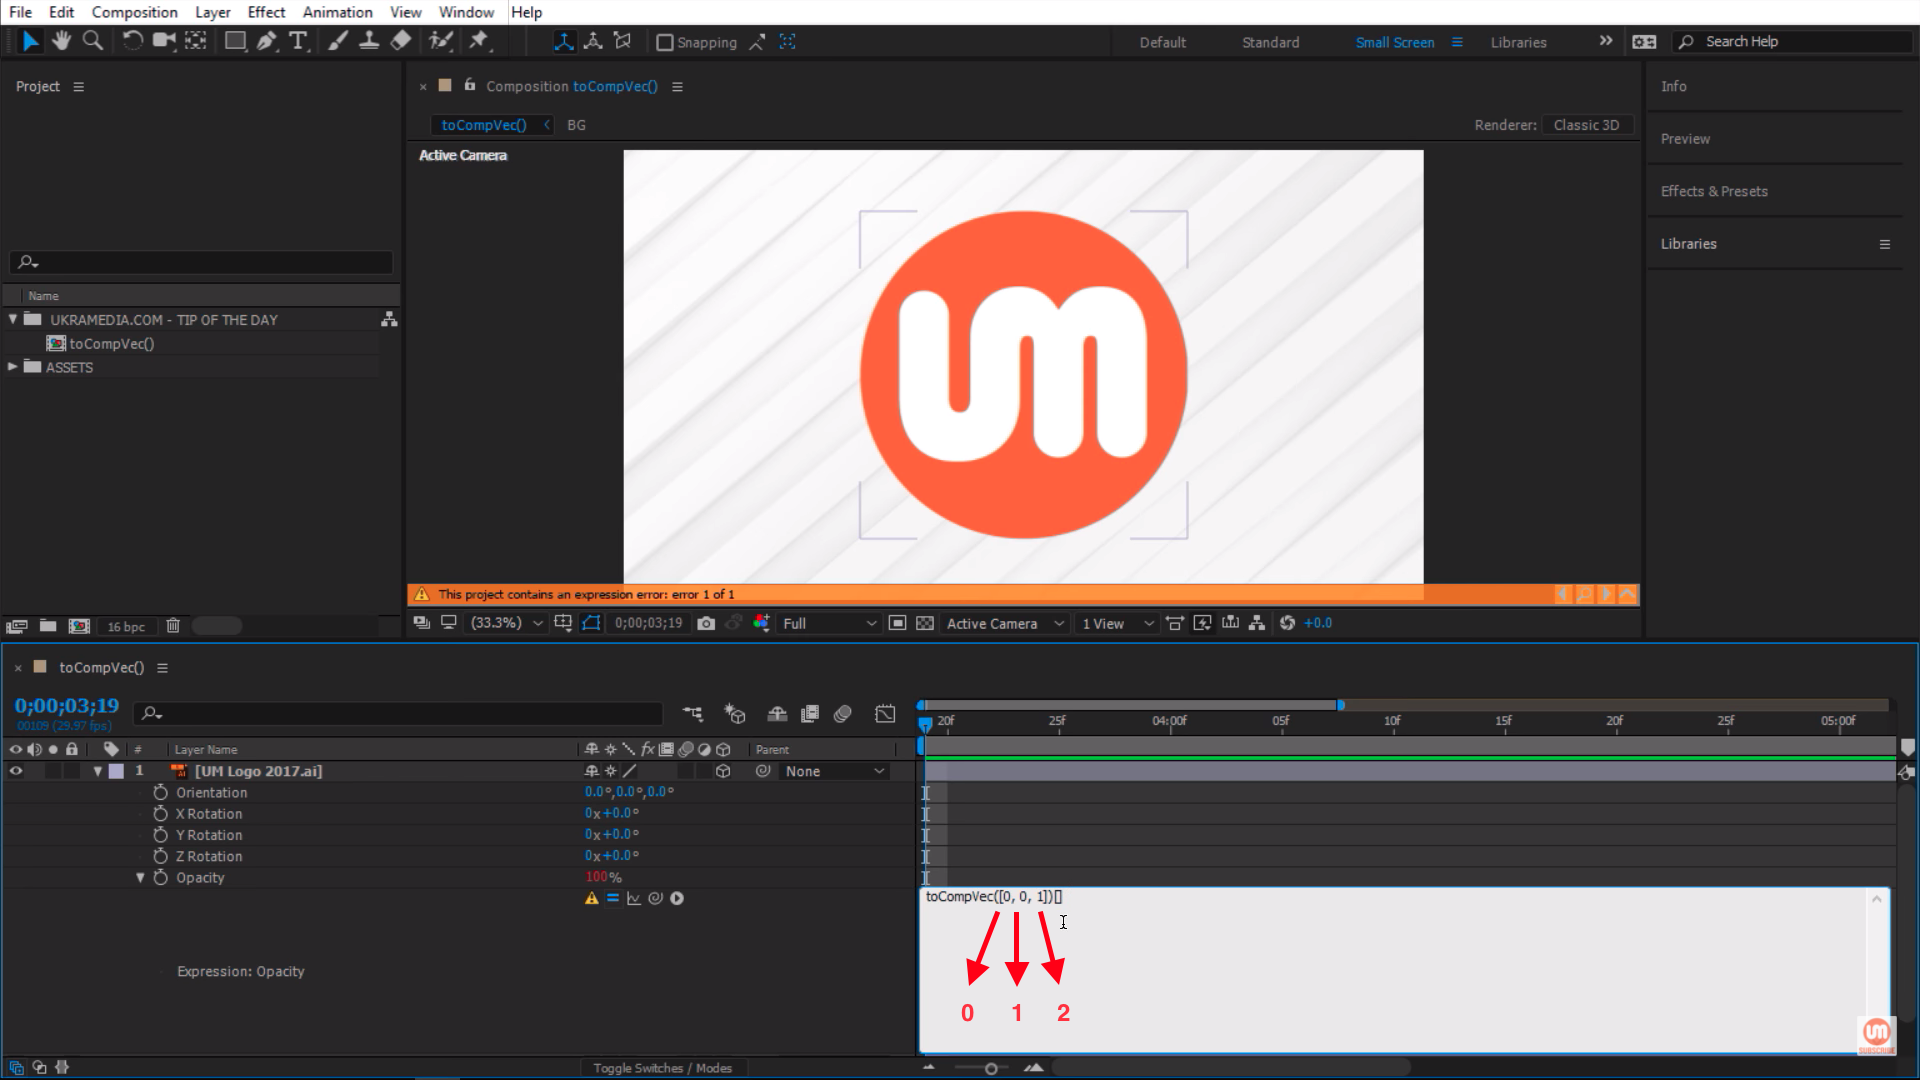 Working with toComVec() After Effects Expression